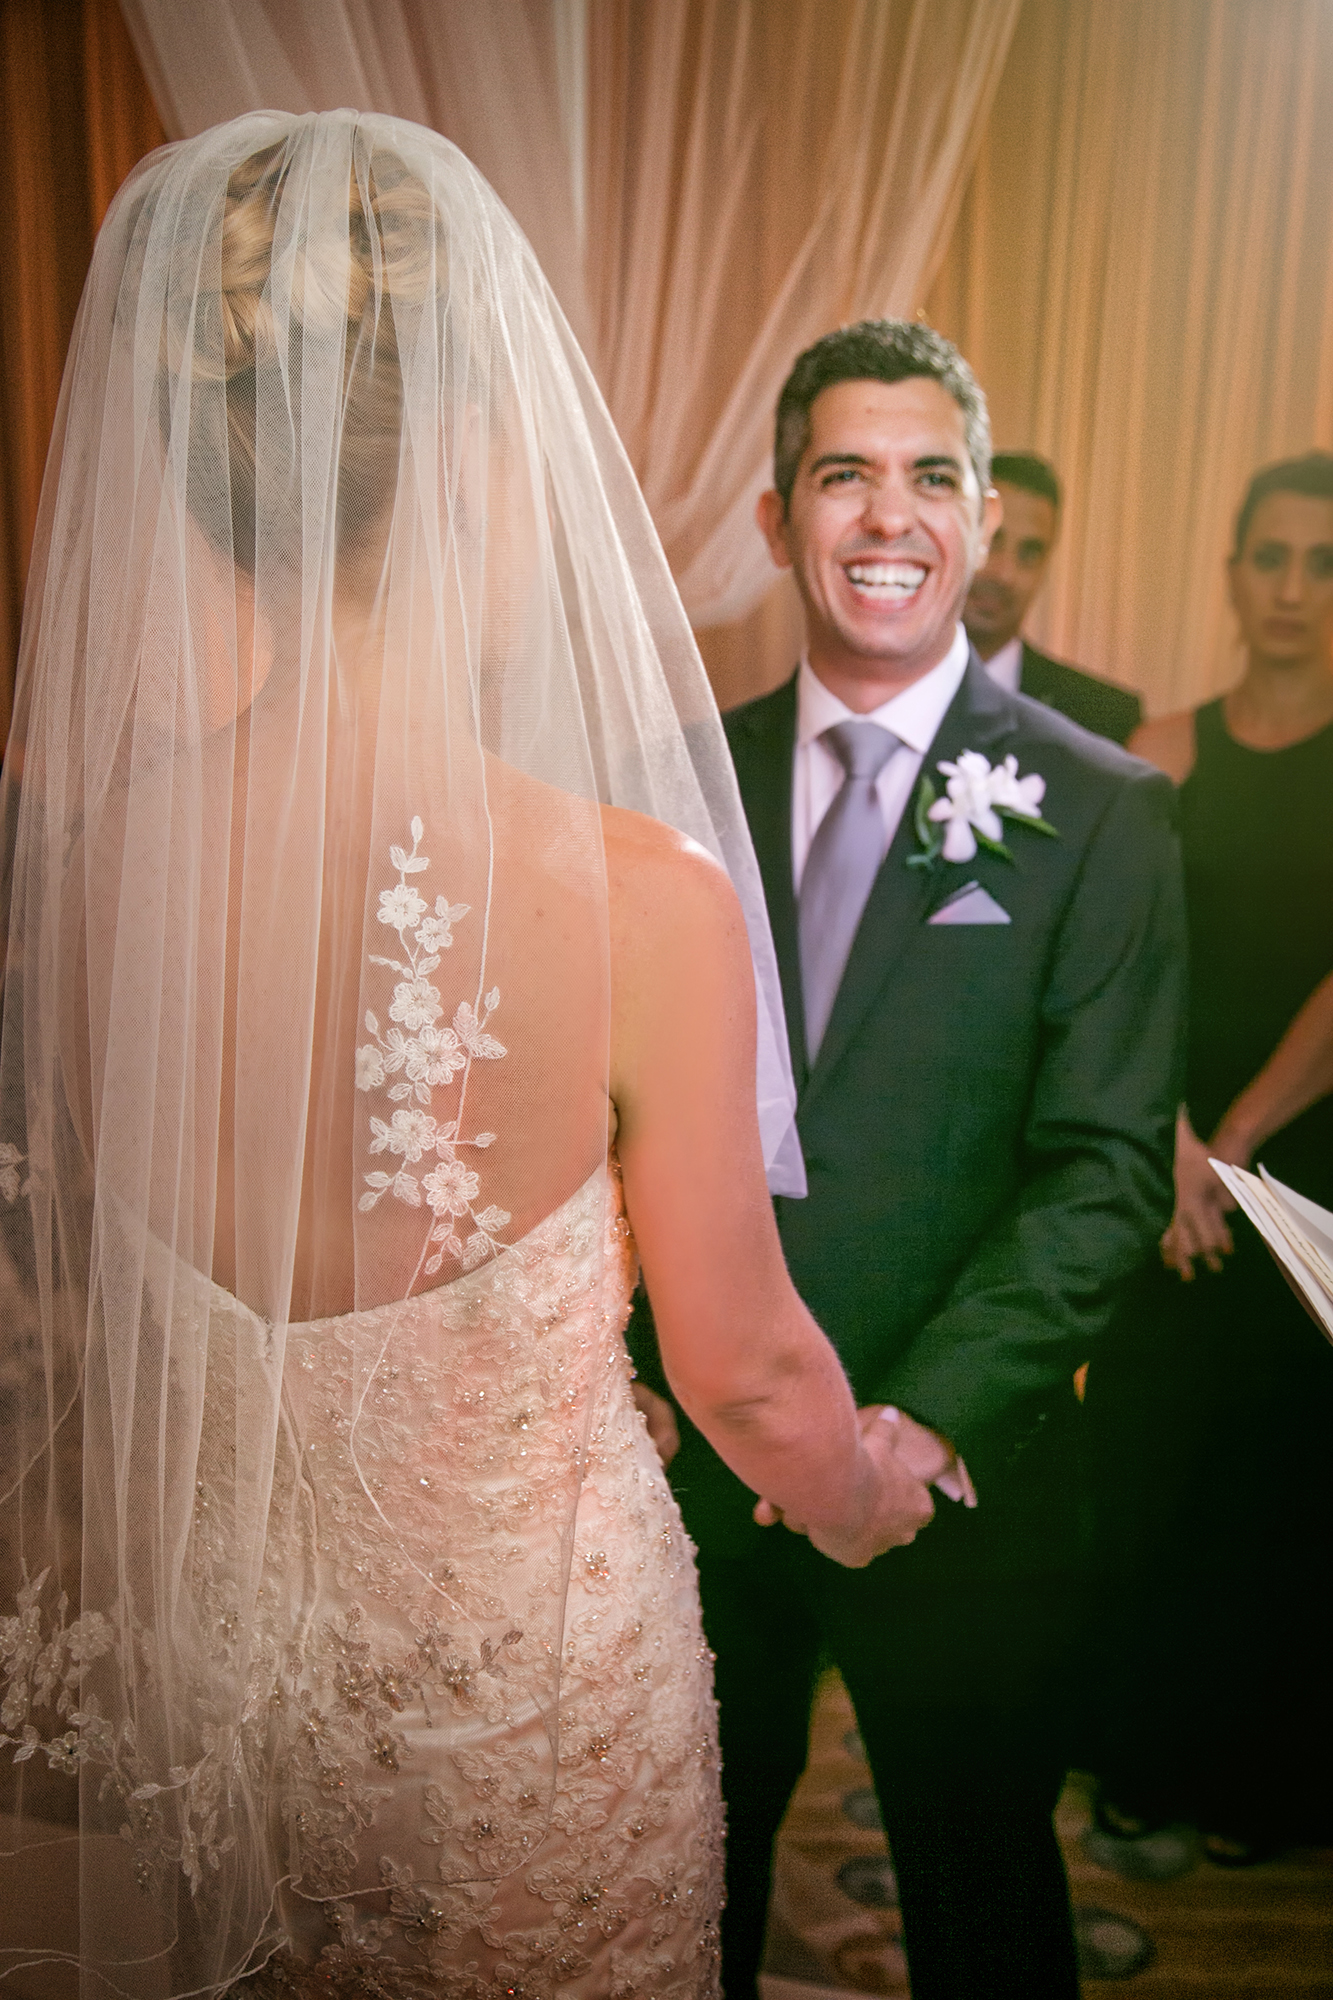 ritz-carlton-florida-wedding-jeffkolodny-photography-04